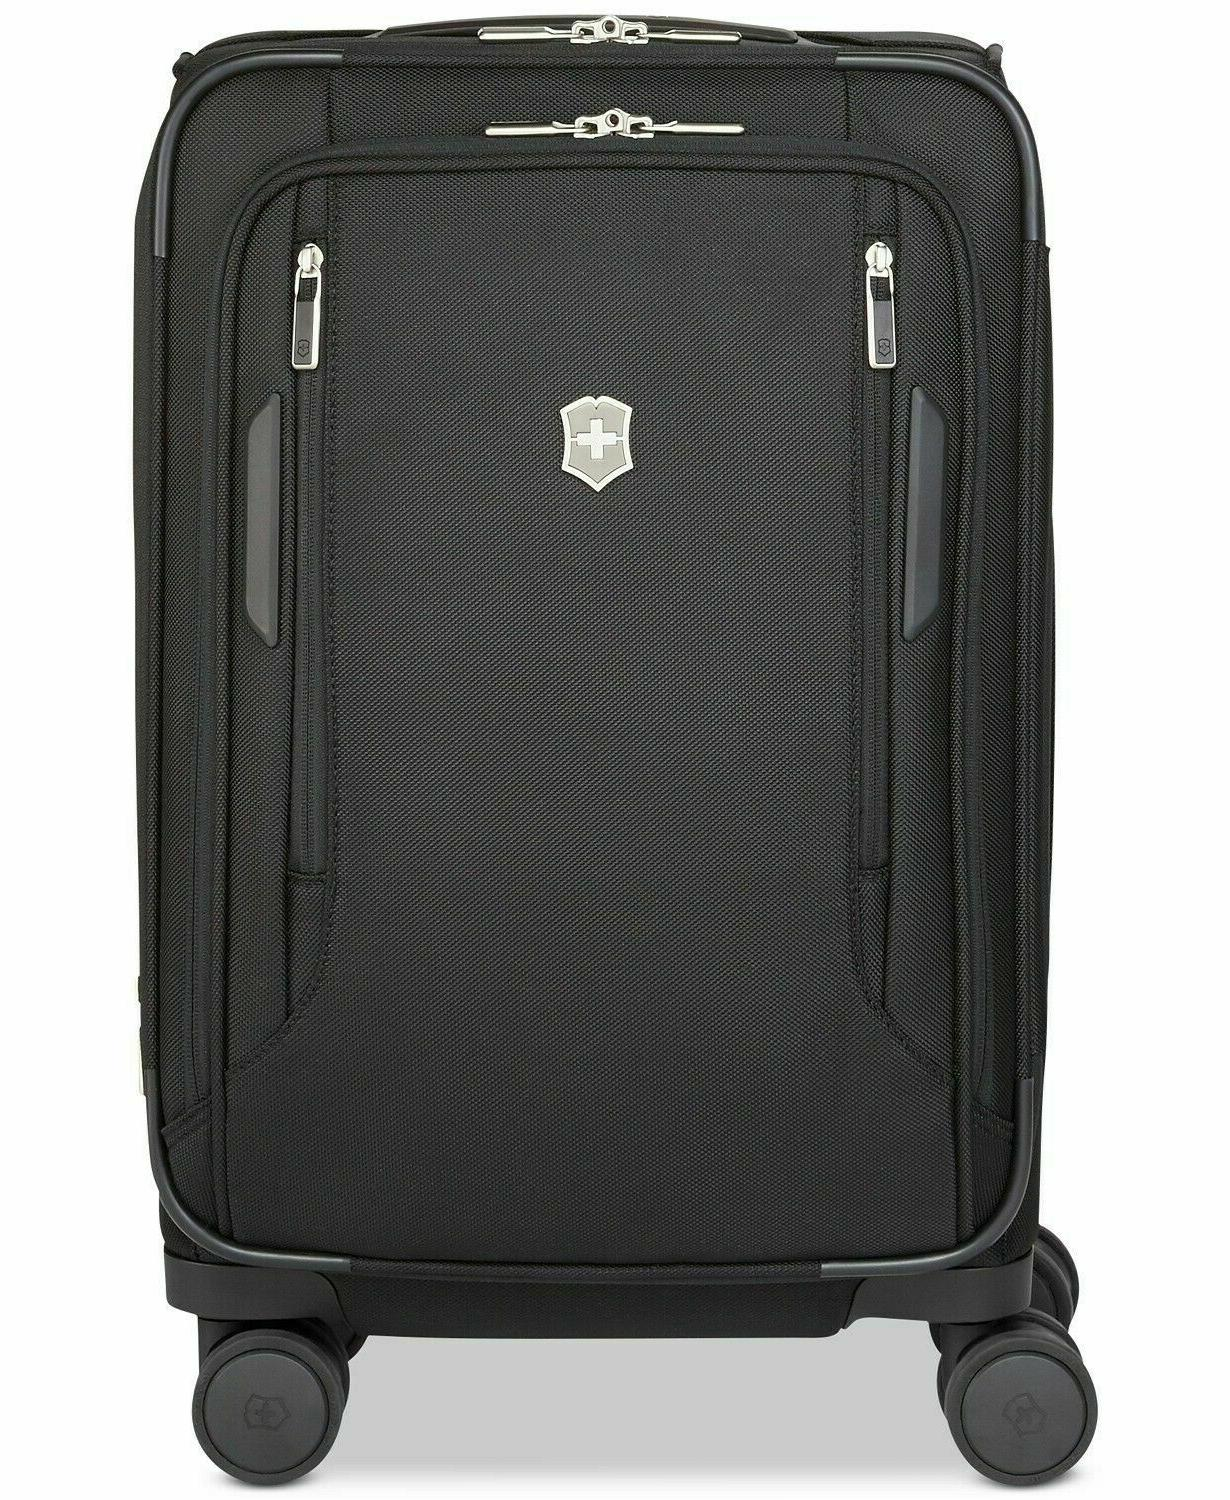 "VICTORINOX VX AVENUE 21.7"" FREQUENT FLYER SPINNER CARRY ON S"